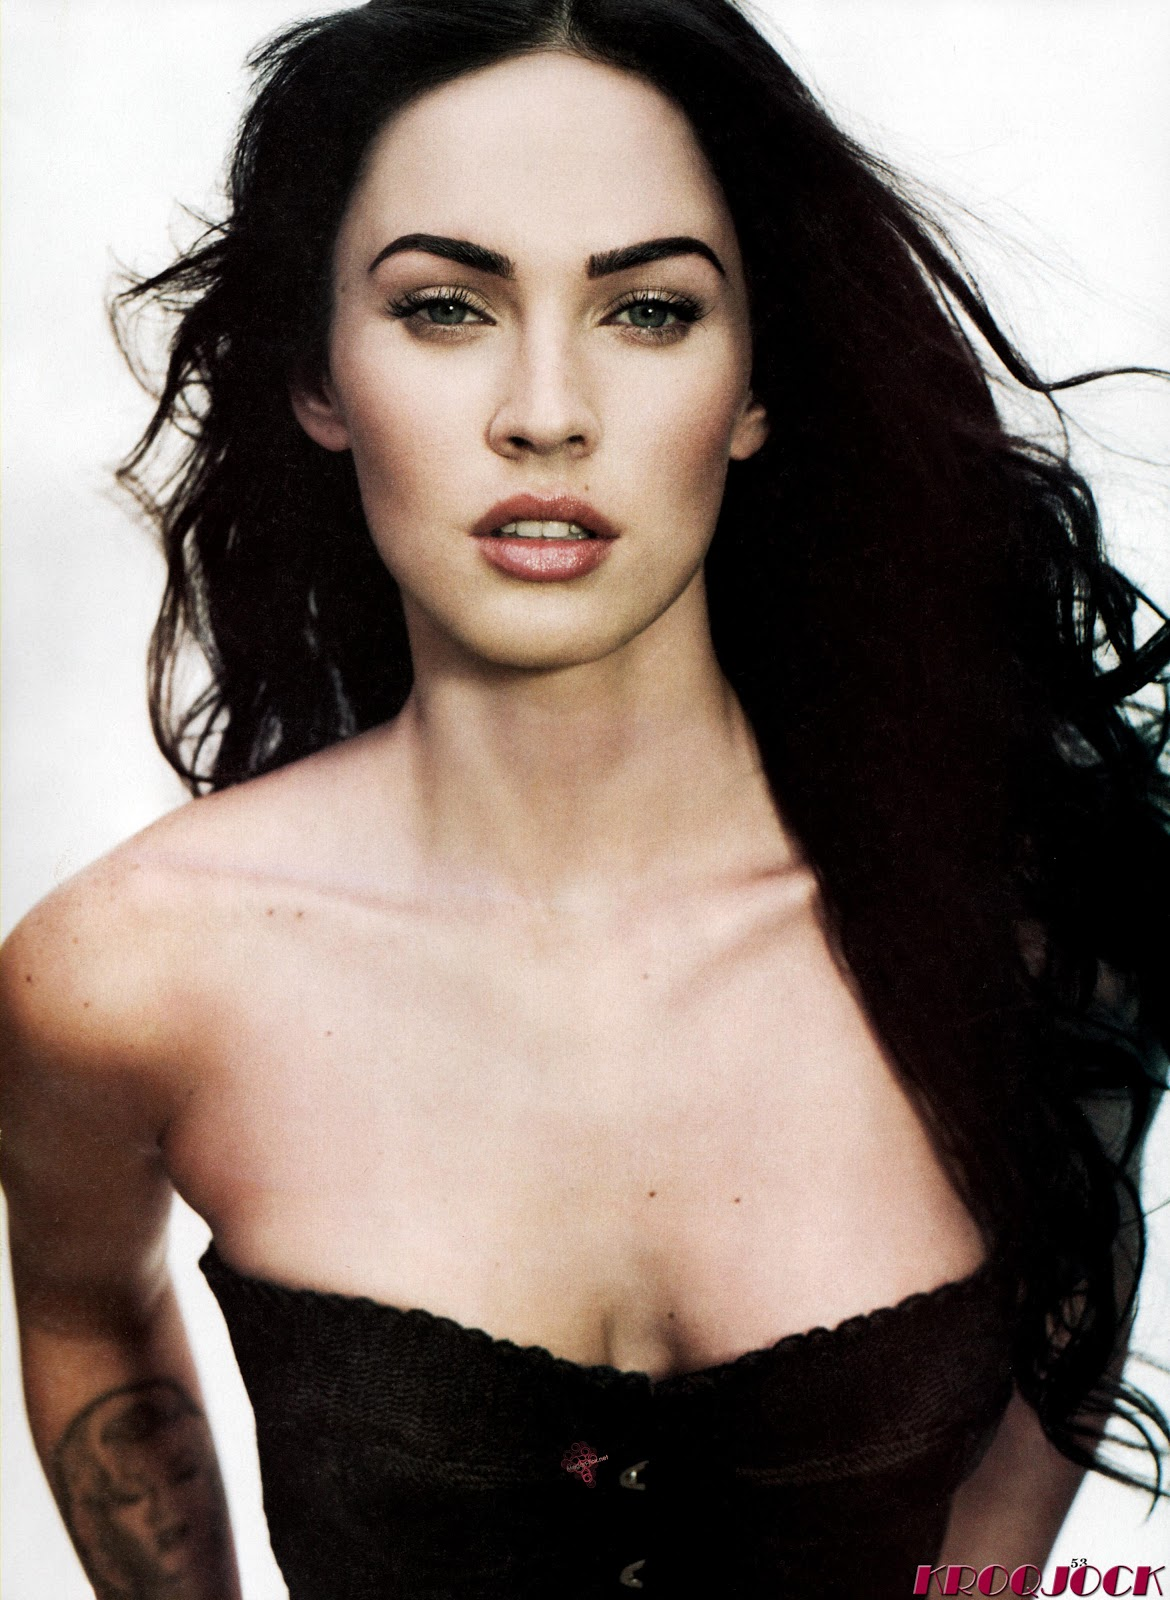 http://1.bp.blogspot.com/-b-K2NPpfAO8/Te864fqBMfI/AAAAAAAAAIs/ayM2MoGioAk/s1600/Megan-Fox_NET_ROLLING_STONE_October_1_2009_Issue_1088_Scanned_by_KROQJOCK_UHQ4.jpg